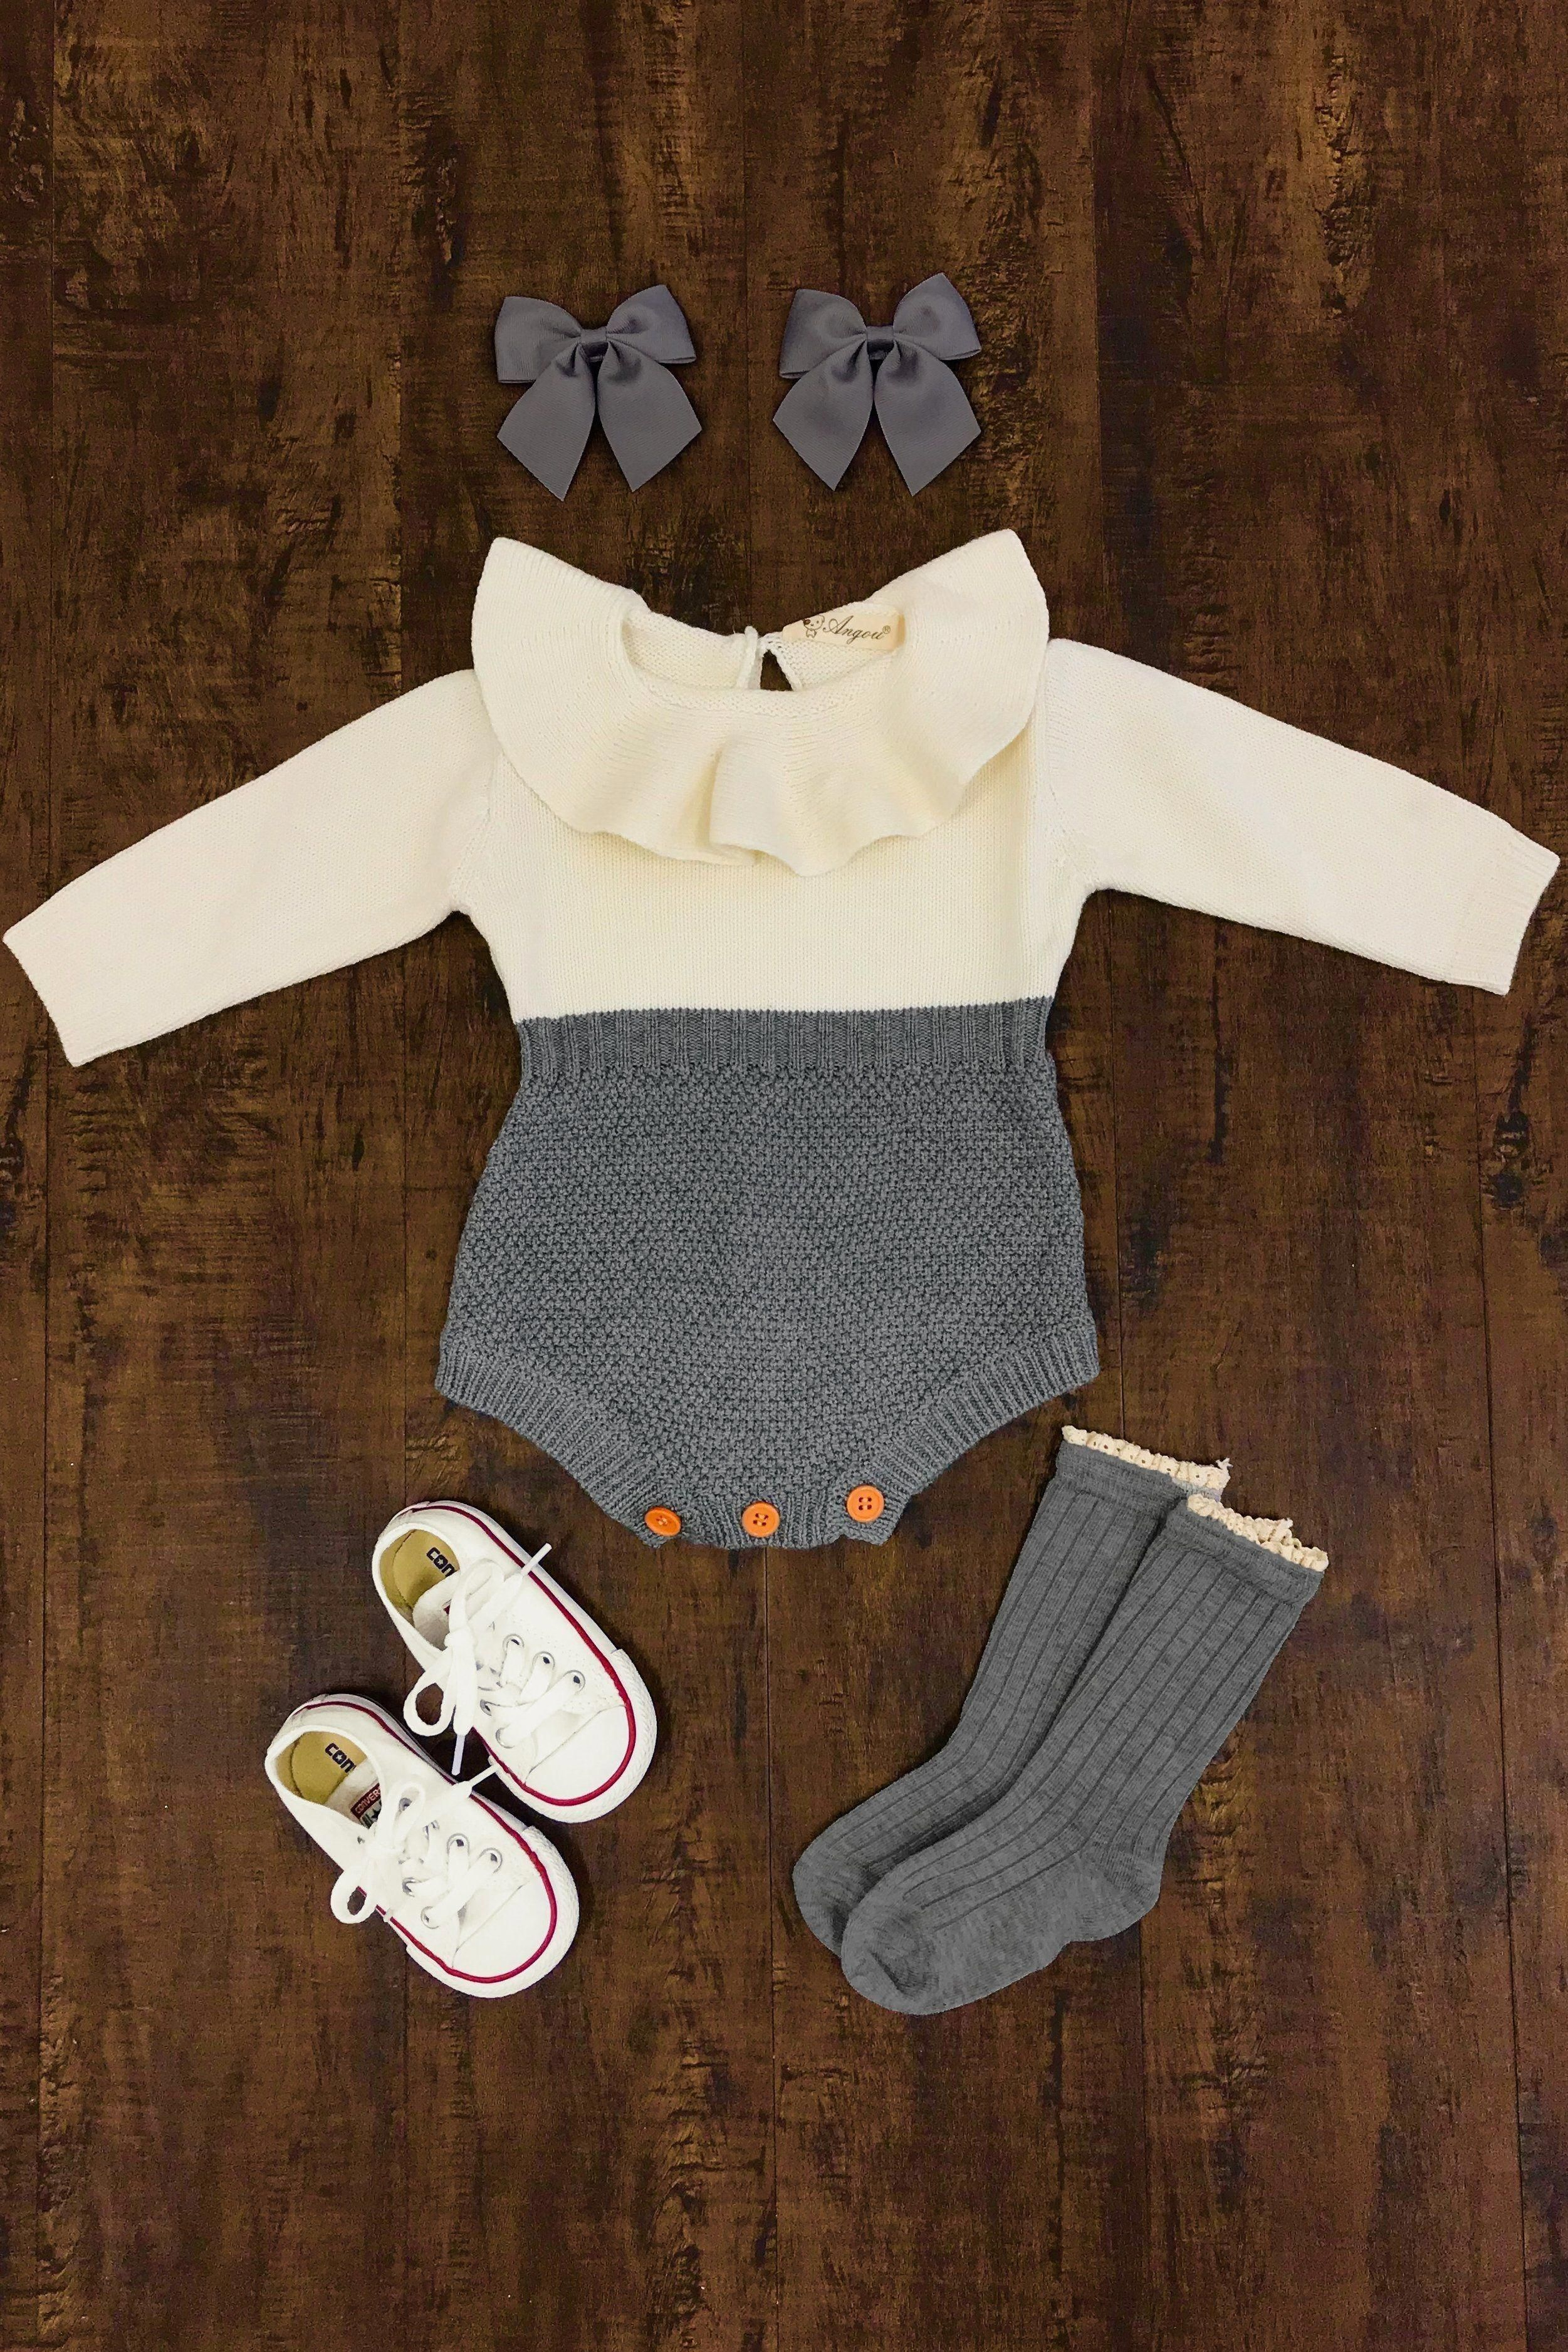 60055f0eb Baby Clothes Girl. Find information on a amazing collection of new baby and  youngsters accessories that include baby